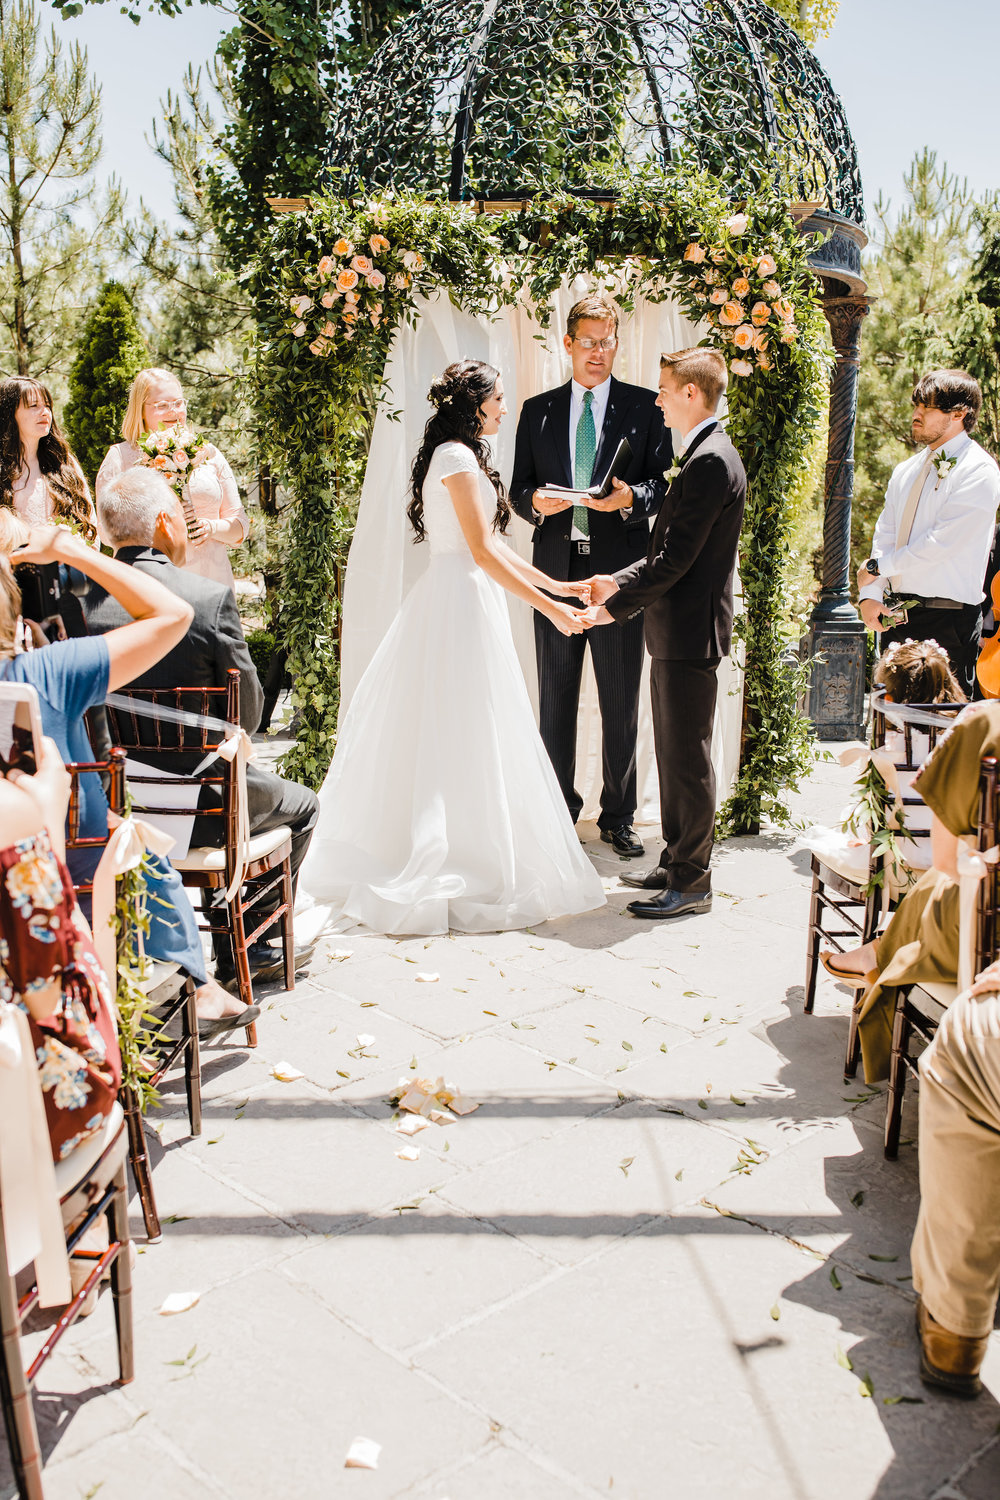 bride and groom during wedding ceremony sleepy ridge golf course orem utah wedding photographer calli richards